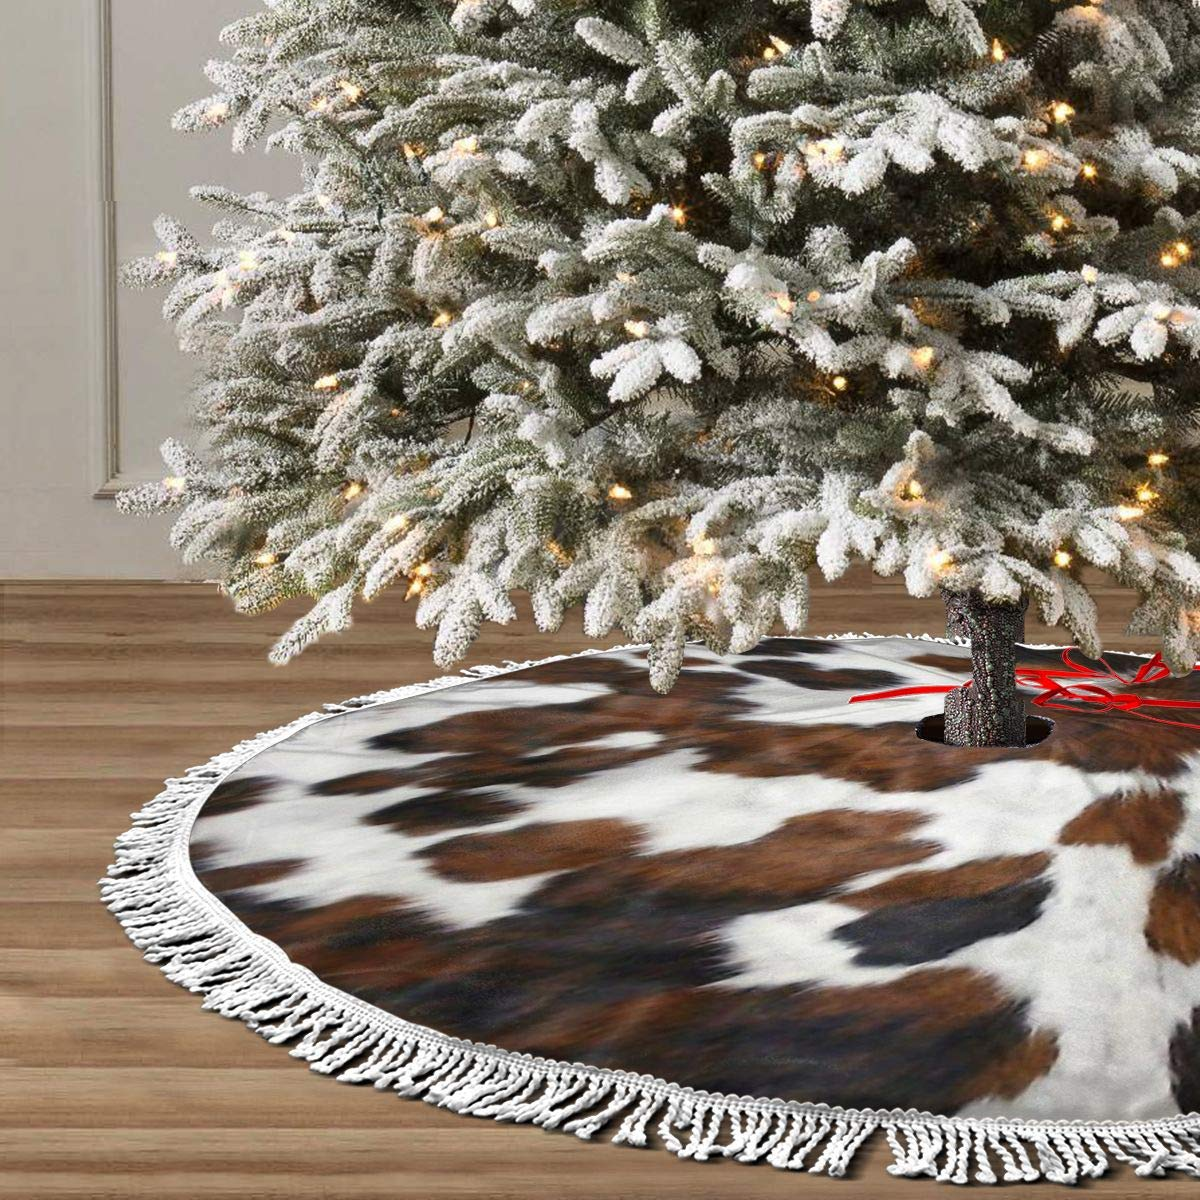 Black and White Texture Christmas Tree Skirt Xmas Tree Skirt Christmas Decorations for Xmas Festive Holiday Ornament New Year Party 30 36 48 SSLife Cowhide Tan